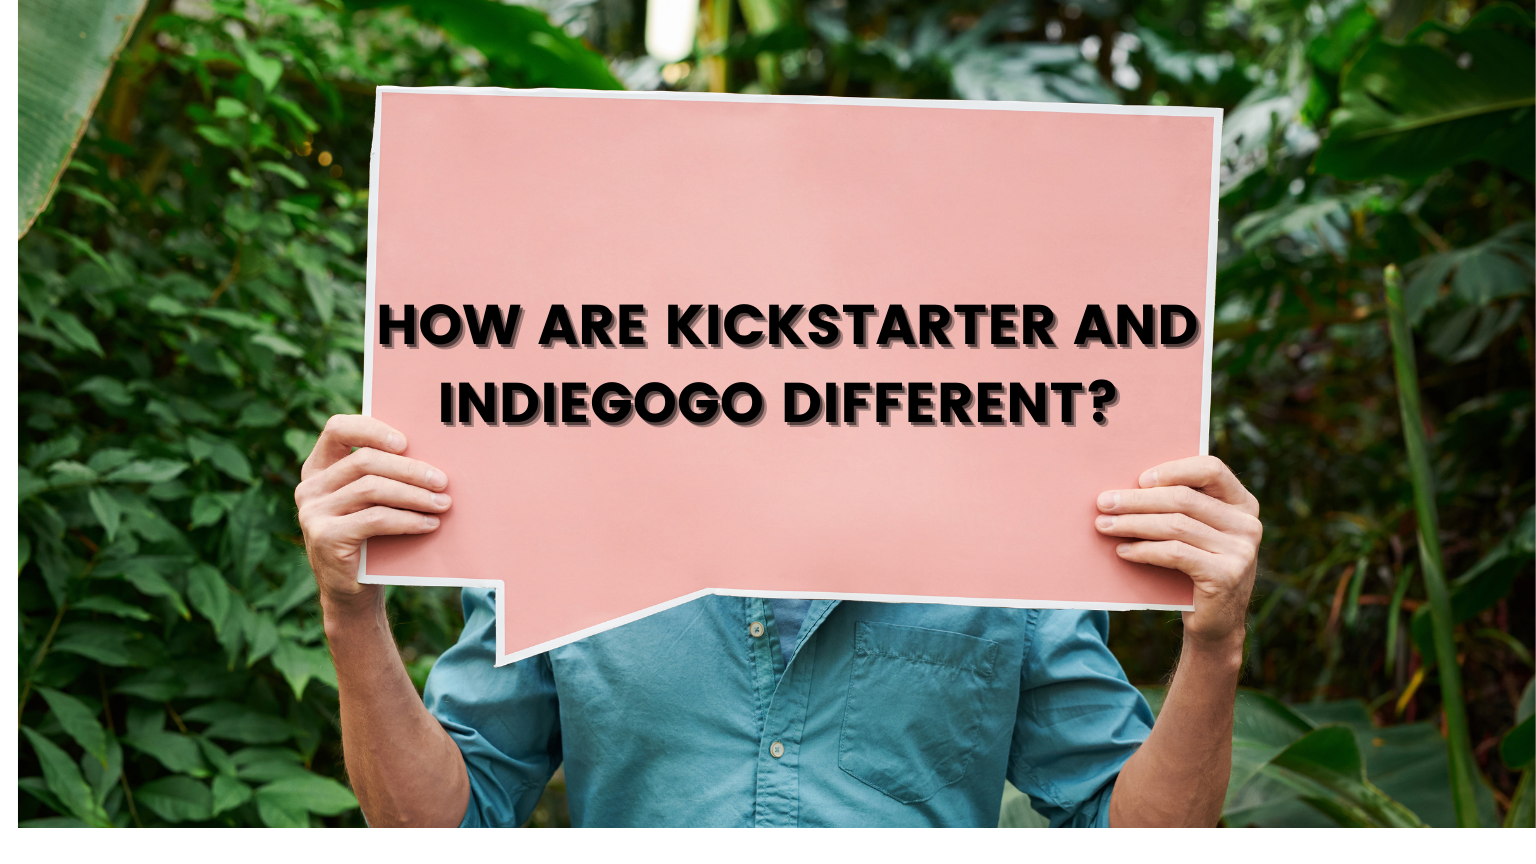 HOW ARE KICKSTARTER AND INDIEGOGO DIFFERENT